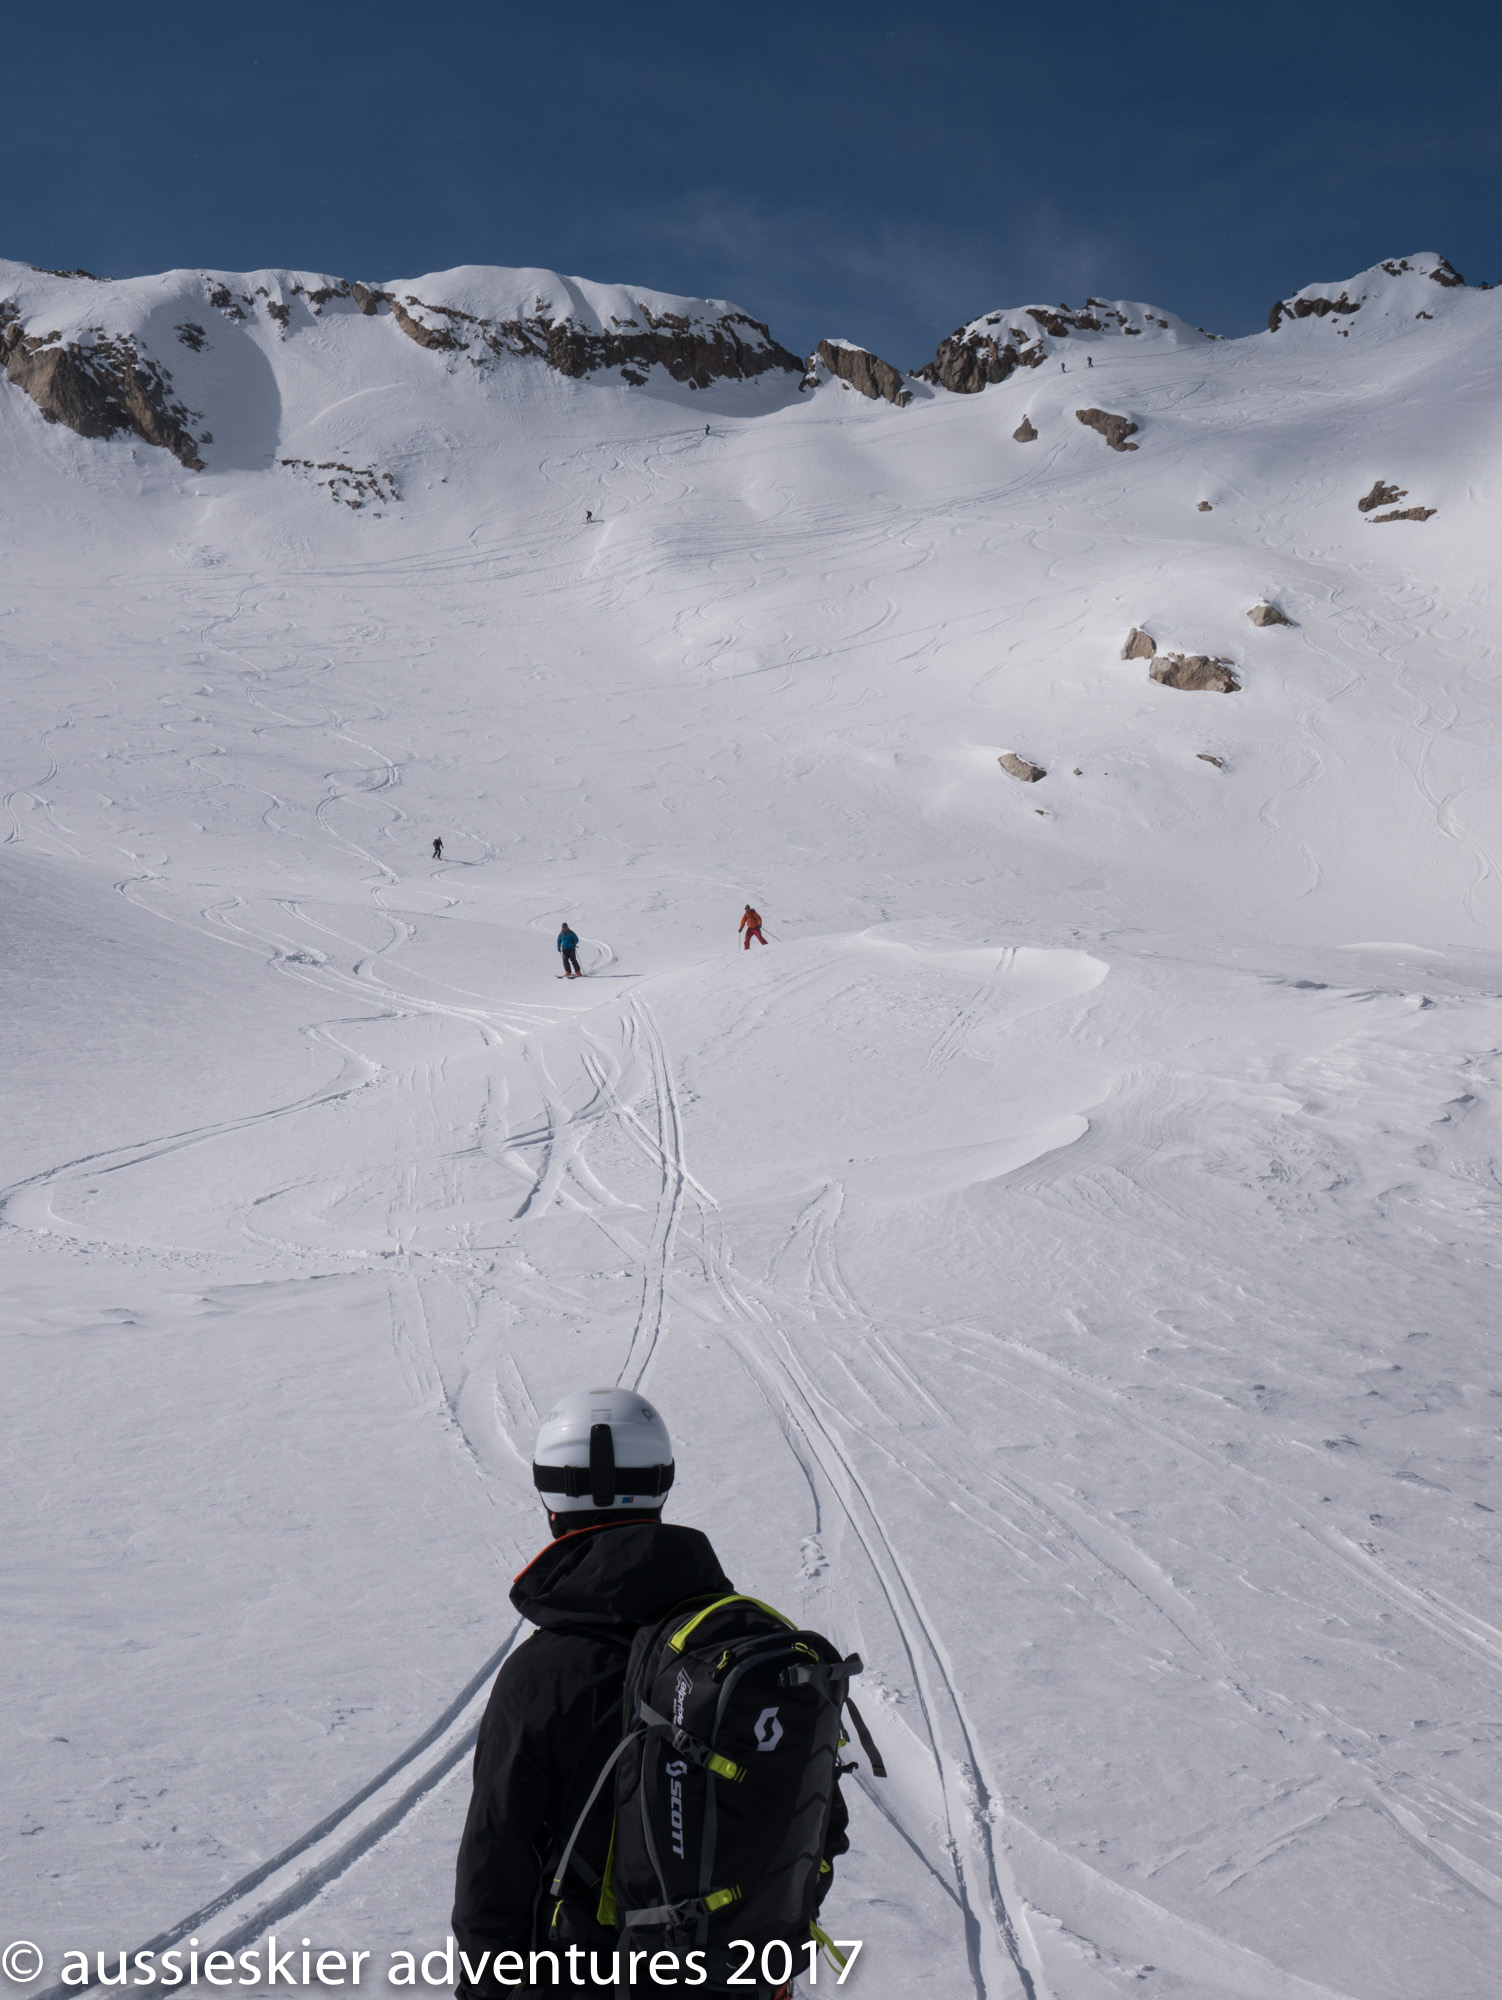 Chamonix 2017 - Ski Touring in the Aiguilles Rouges